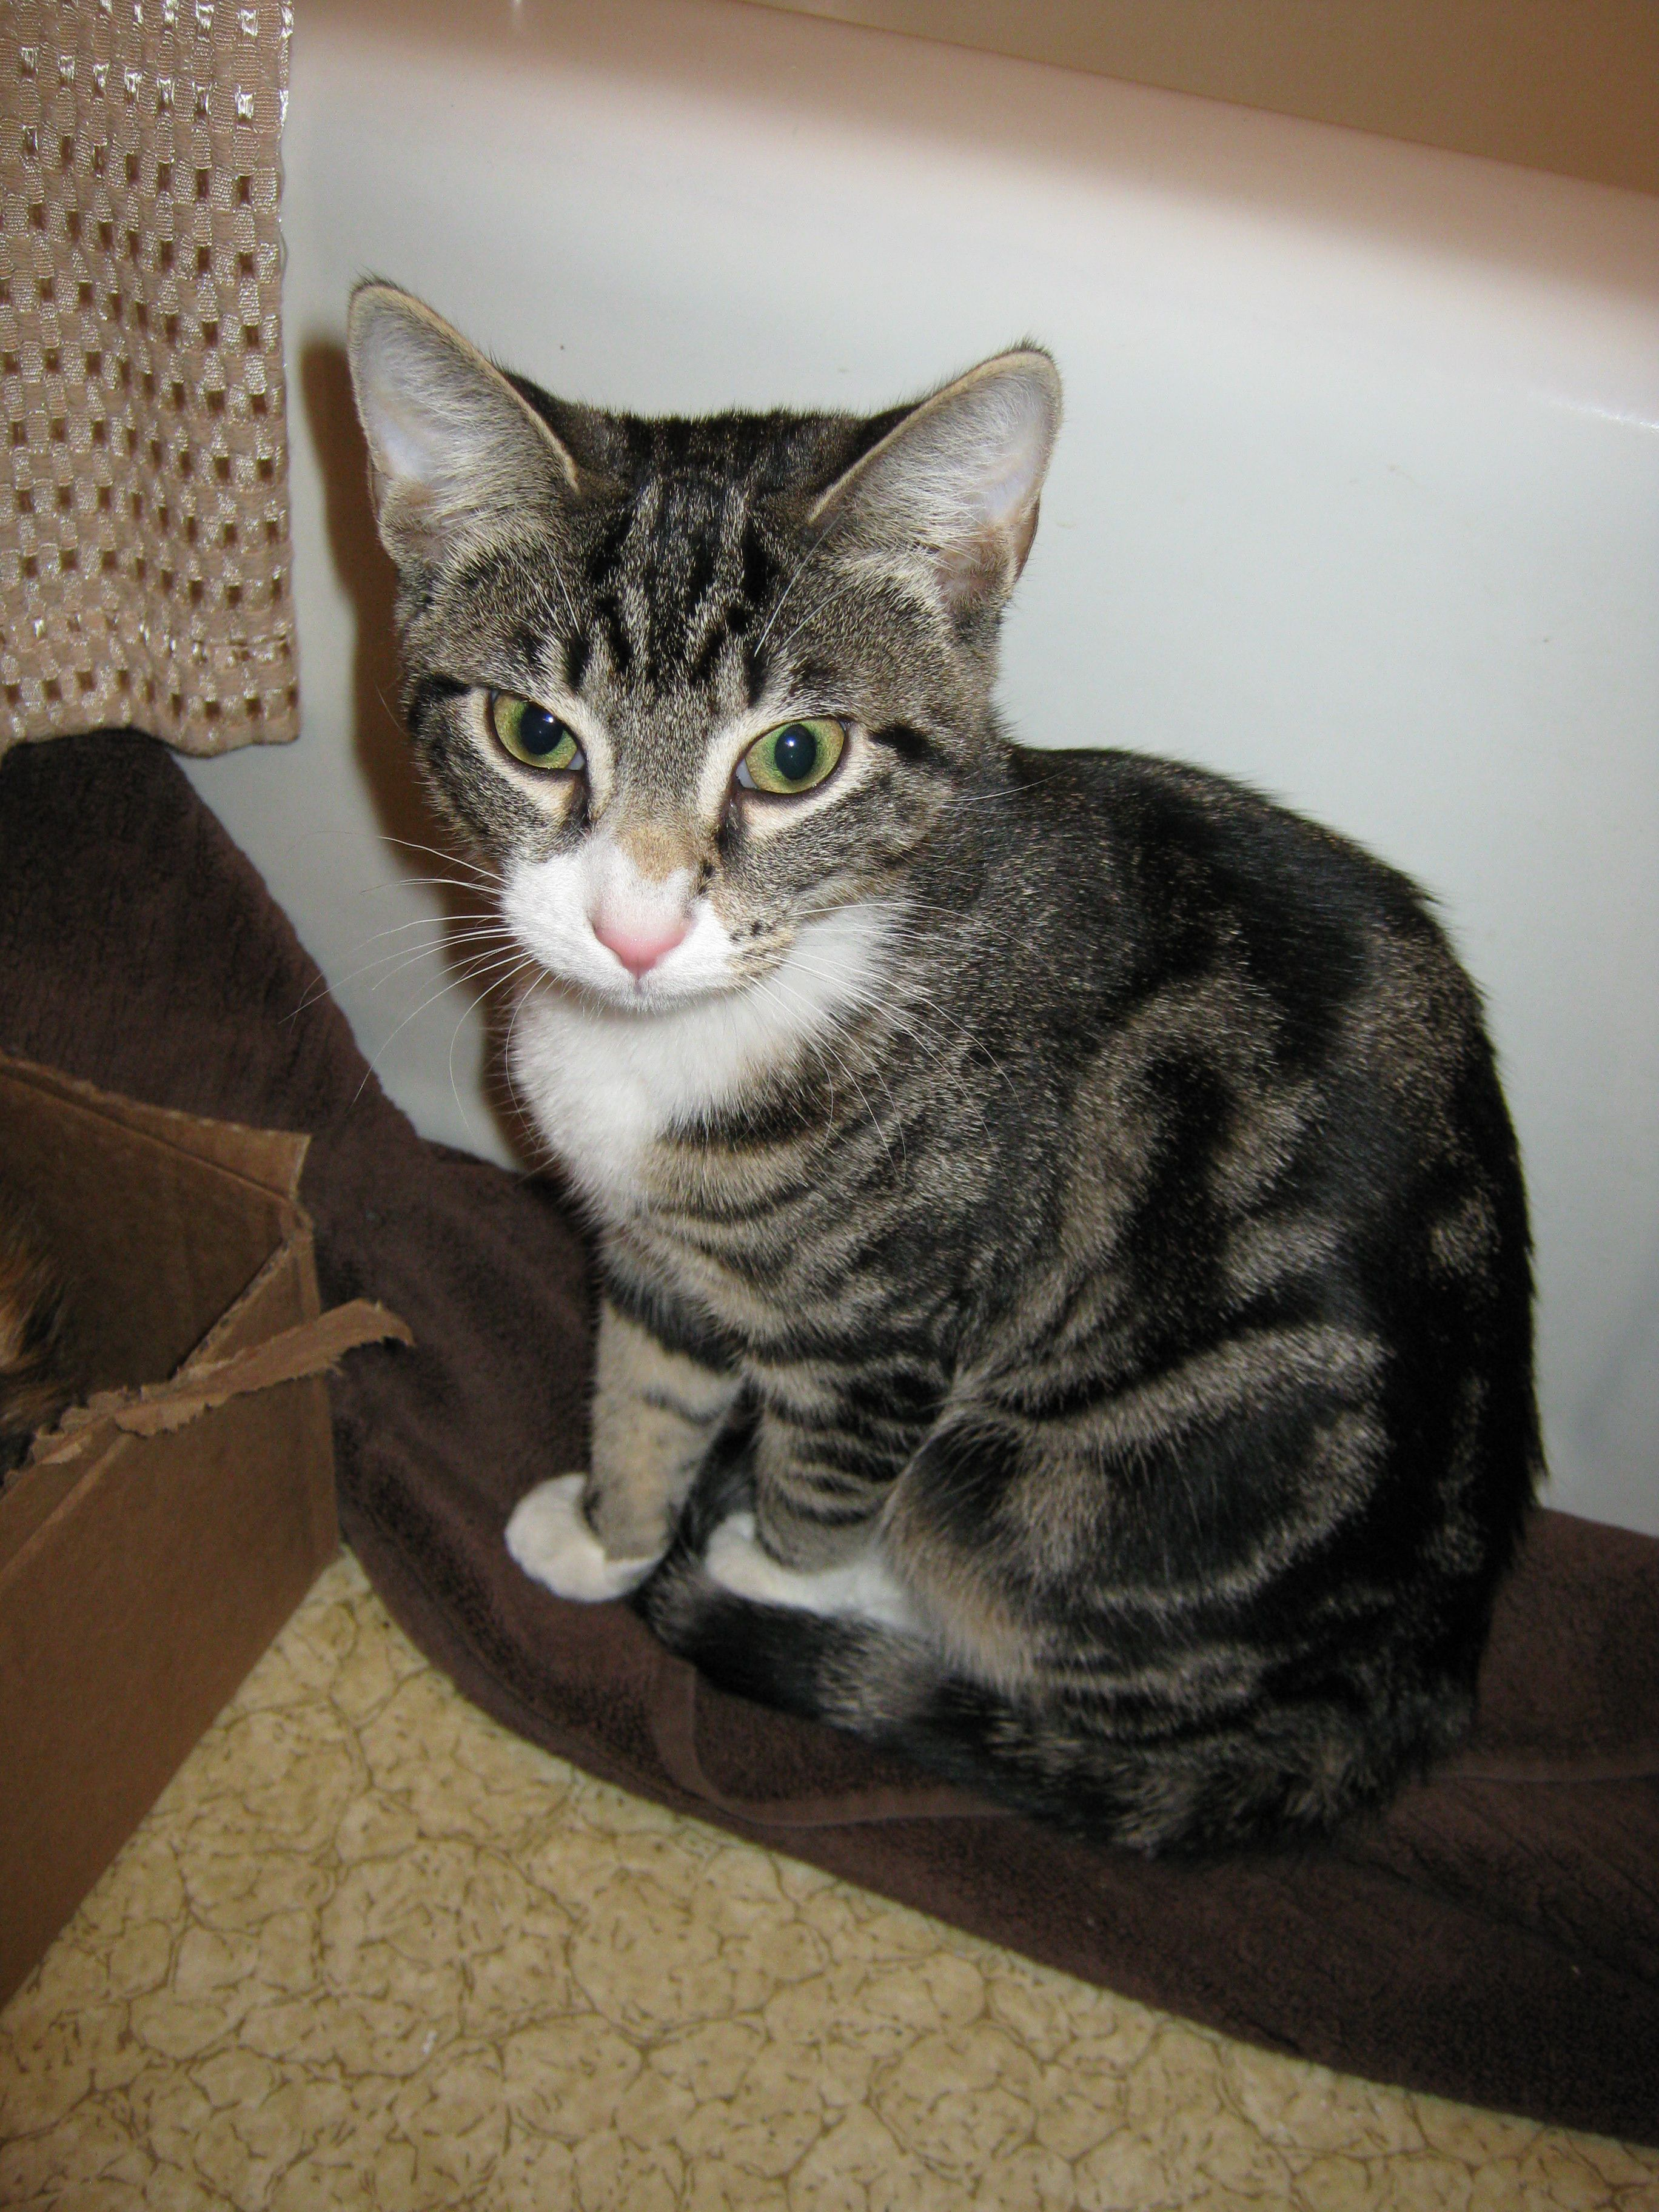 Lost Female Cat Holliston Ma I Am Looking For My Cat Who Escaped From My House In Holliston Last Week The Attached Photo Shows Her As A Cats Kitten Cat Lady